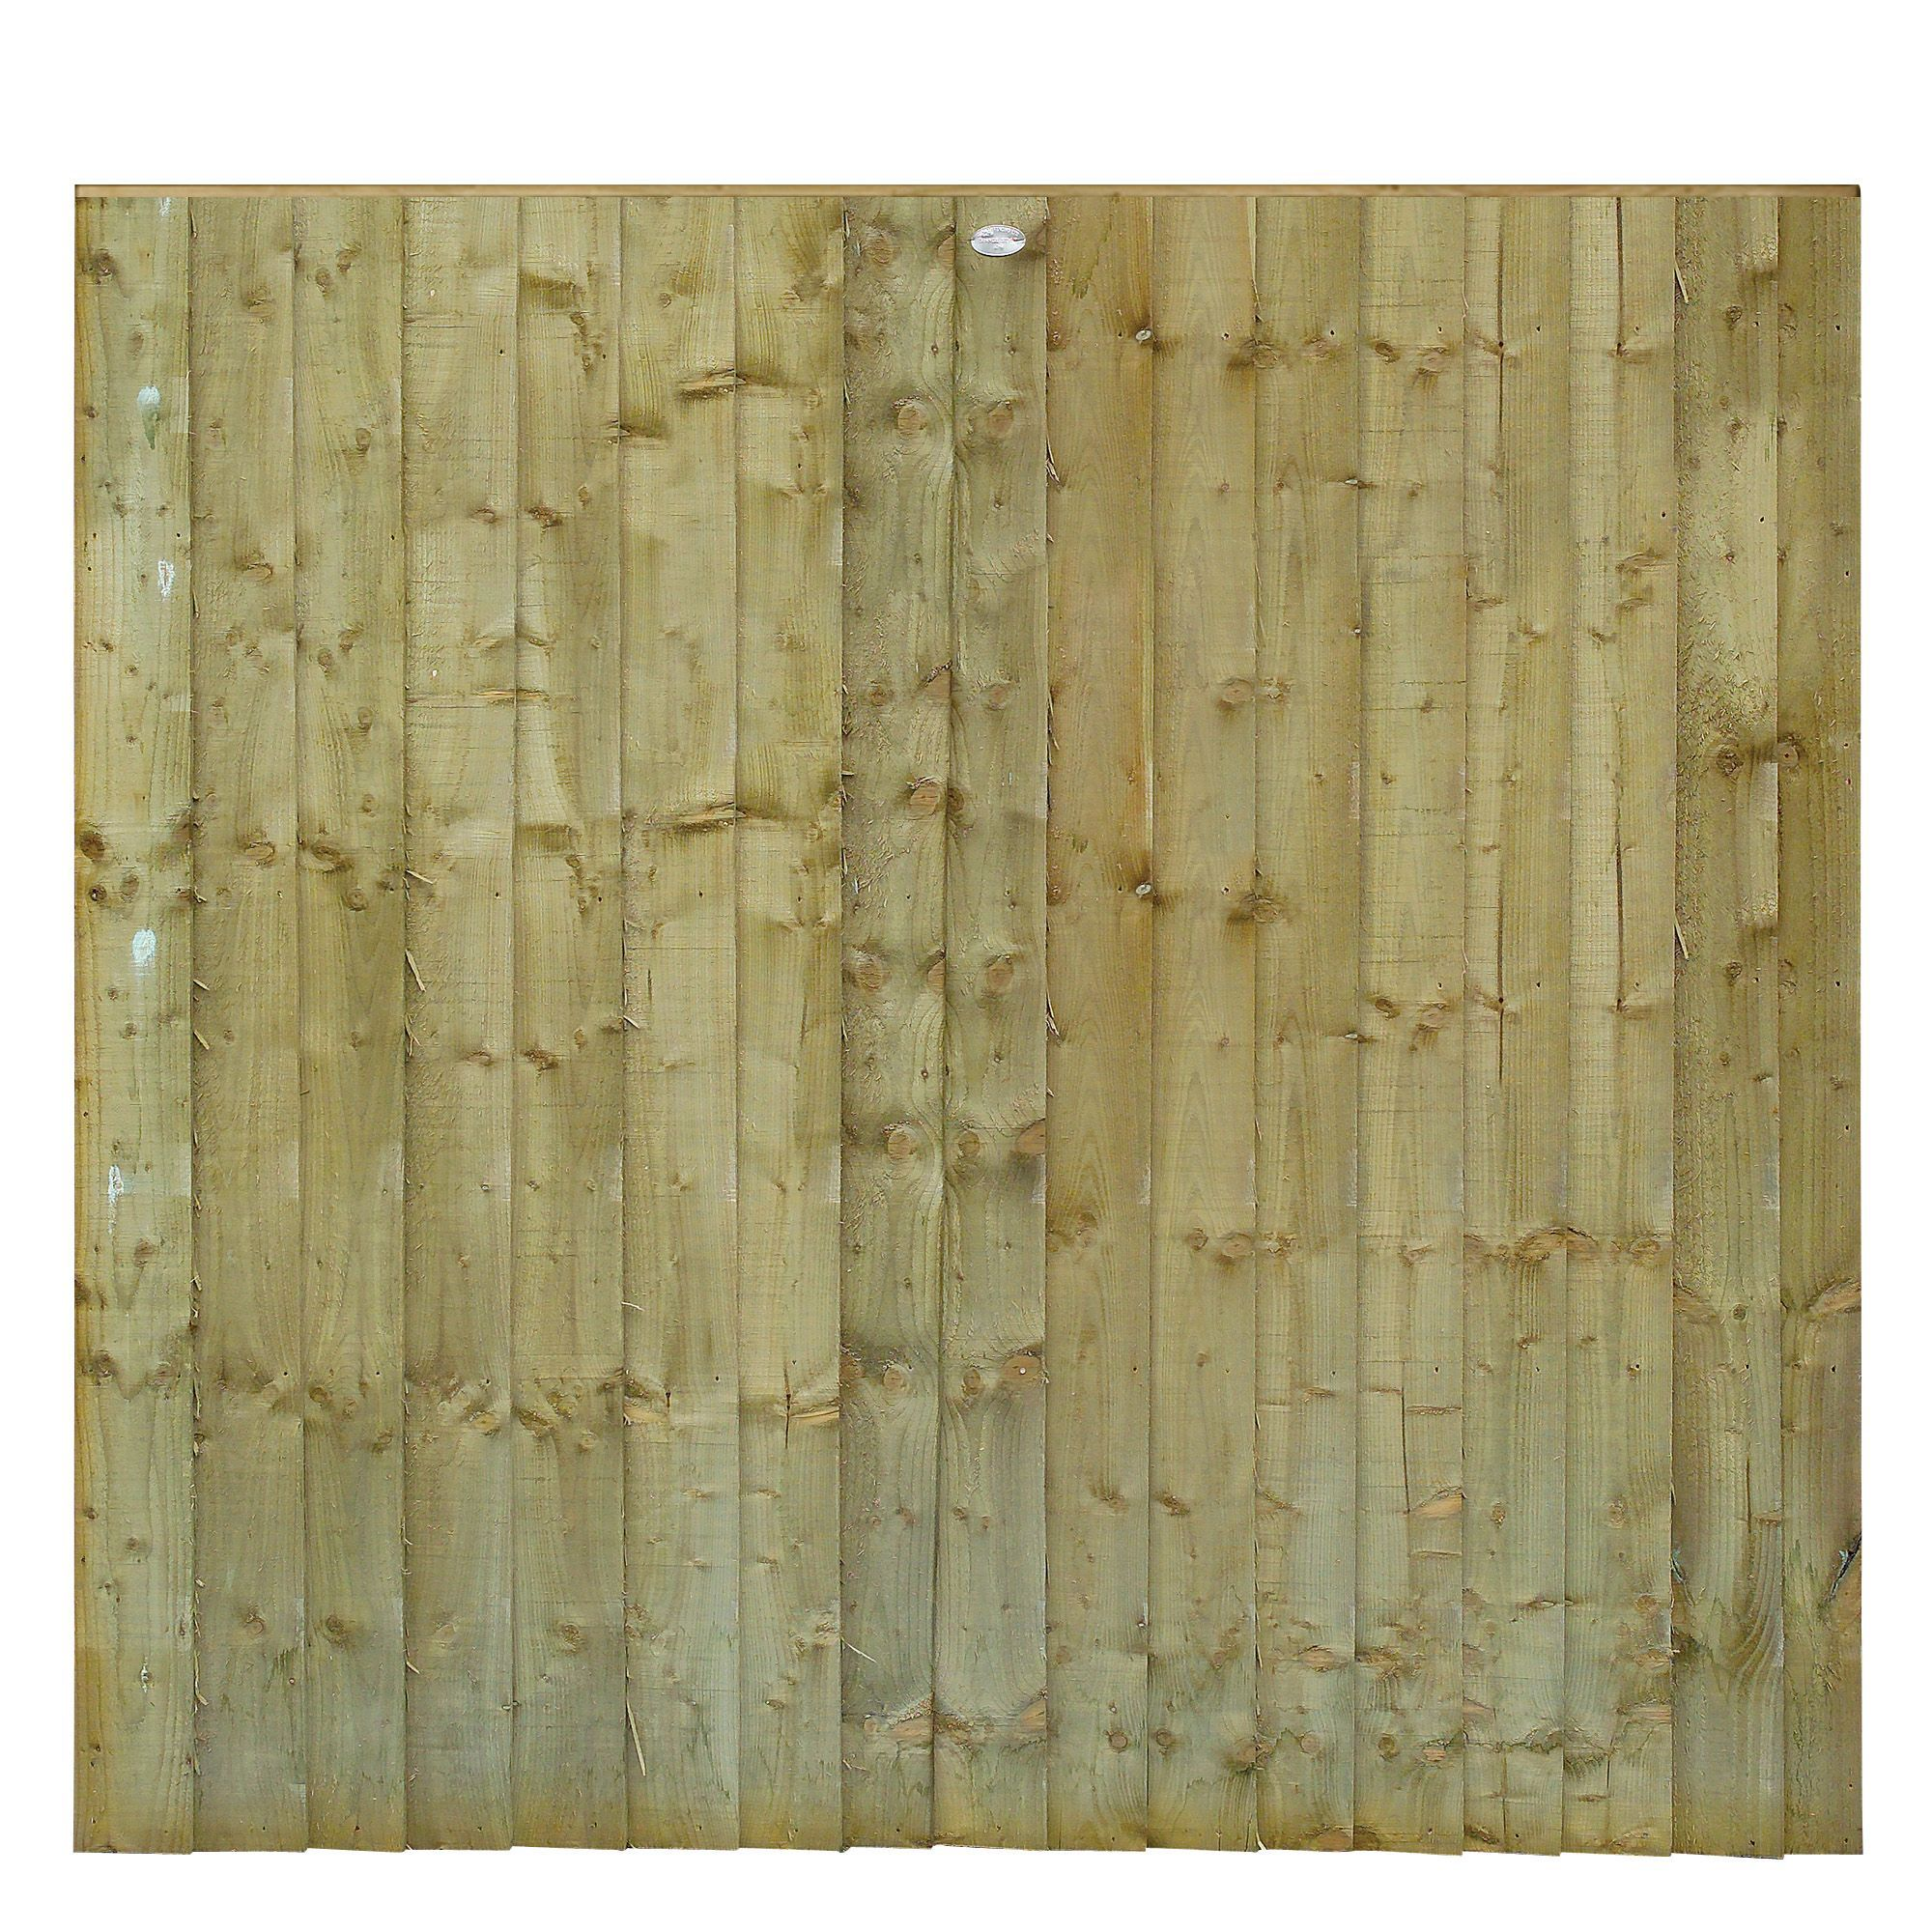 Grange Professional Feather Edge Overlap Vertical Slat Fence Panel (w)1.83 M (h)1.8m, Pack Of 4